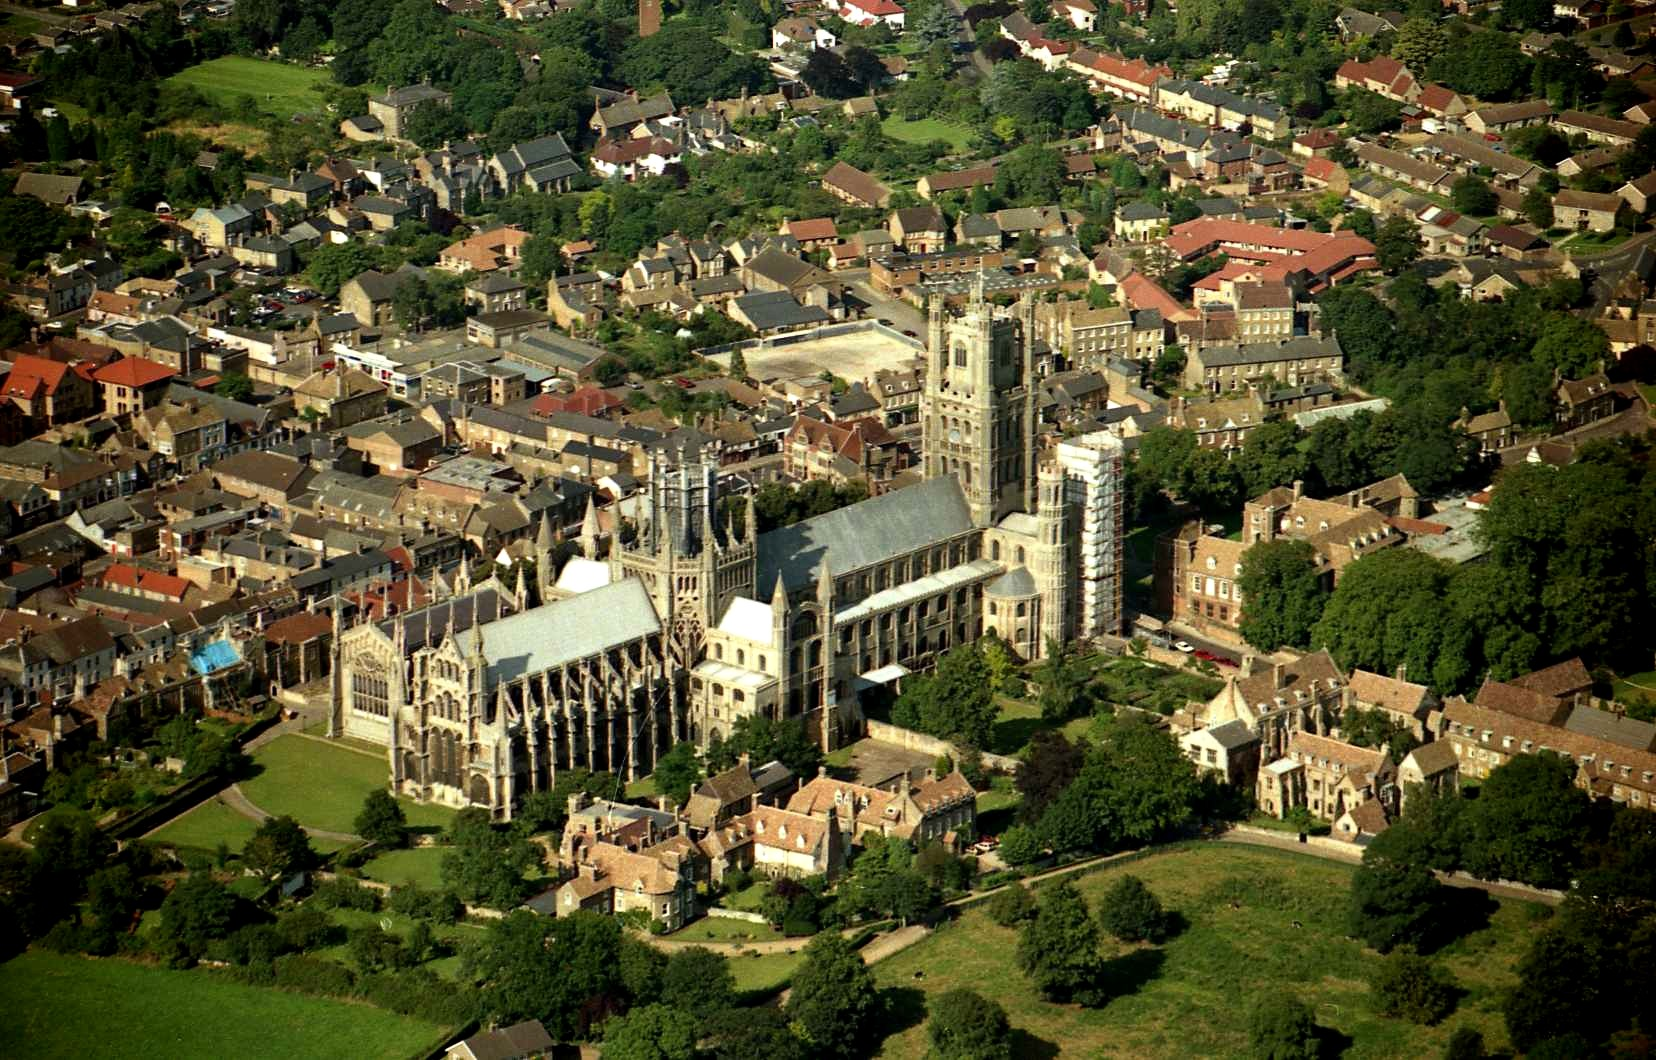 How to Travel from London to Ely